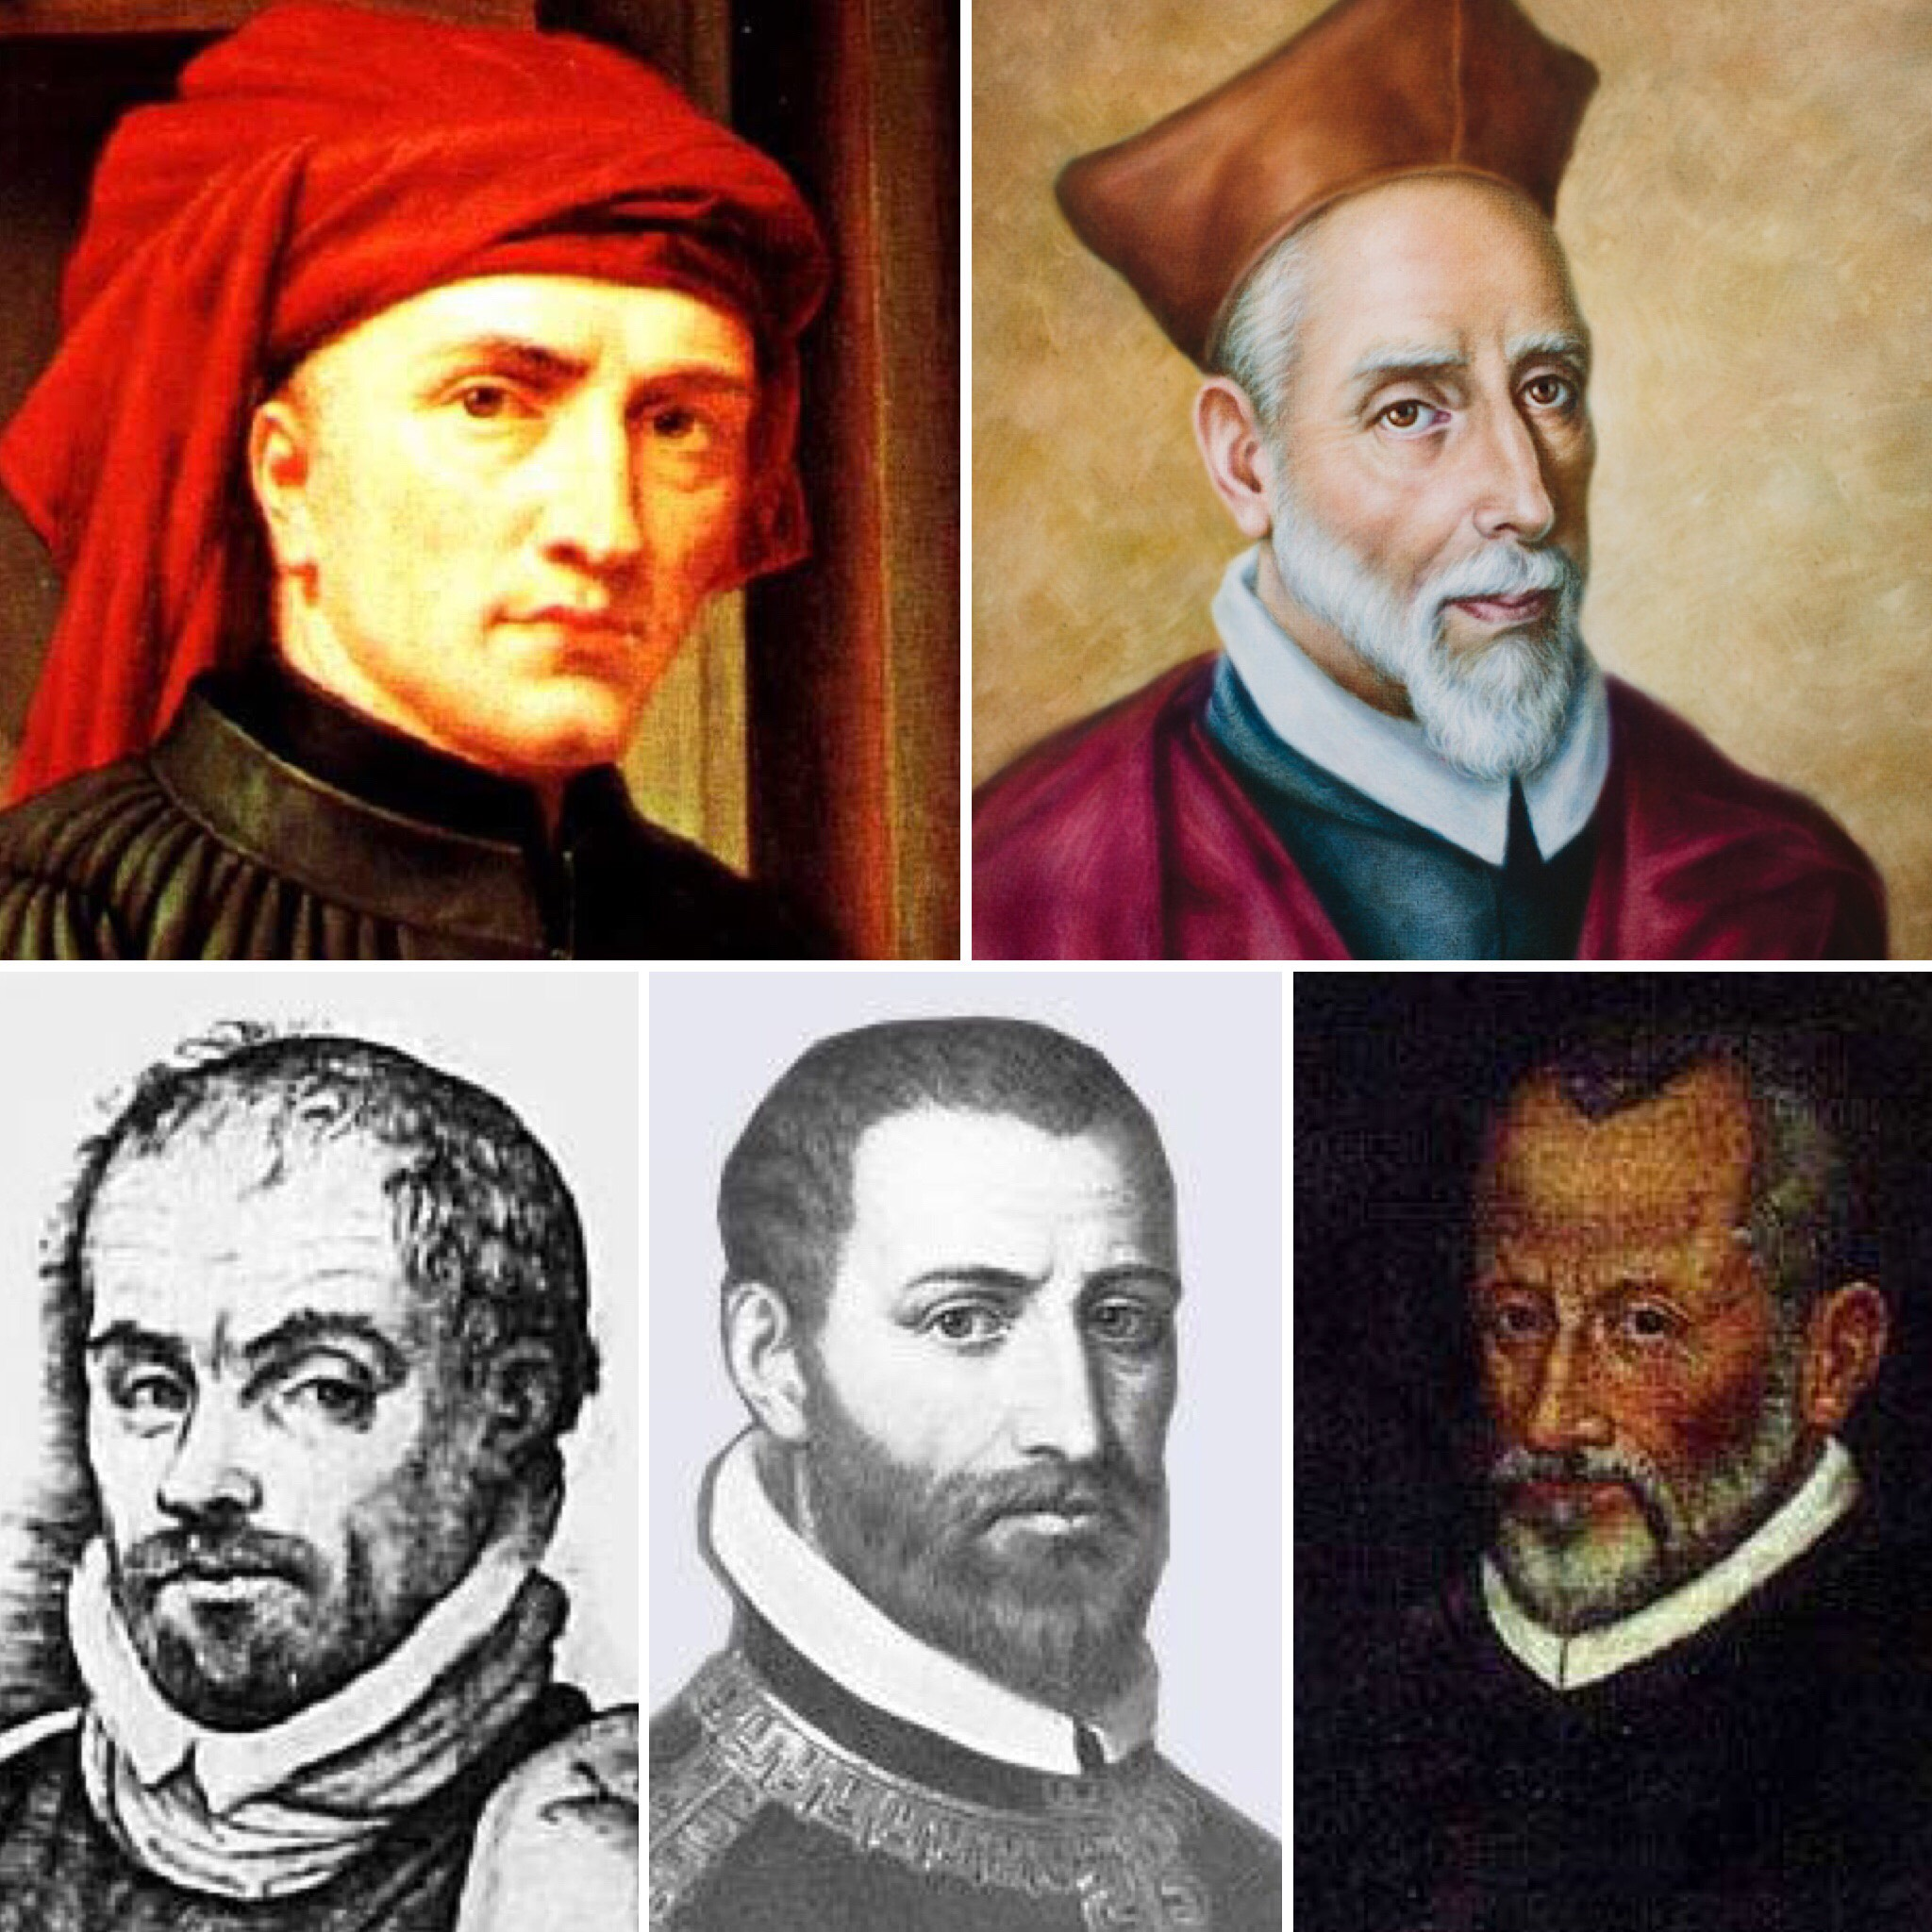 Some of the composers featured on the 'War and Peace' tour programme by The Tallis Scholars. Clockwise from top left: Josquin des Prez (c.1450/55-1521), Francisco Guerrero (1528-1599), Giovanni Pierluigi da Palestrina (1525-1594), Tomás Luis de Victoria (c.1548-1611), Alonso Lobo (1555-1617).